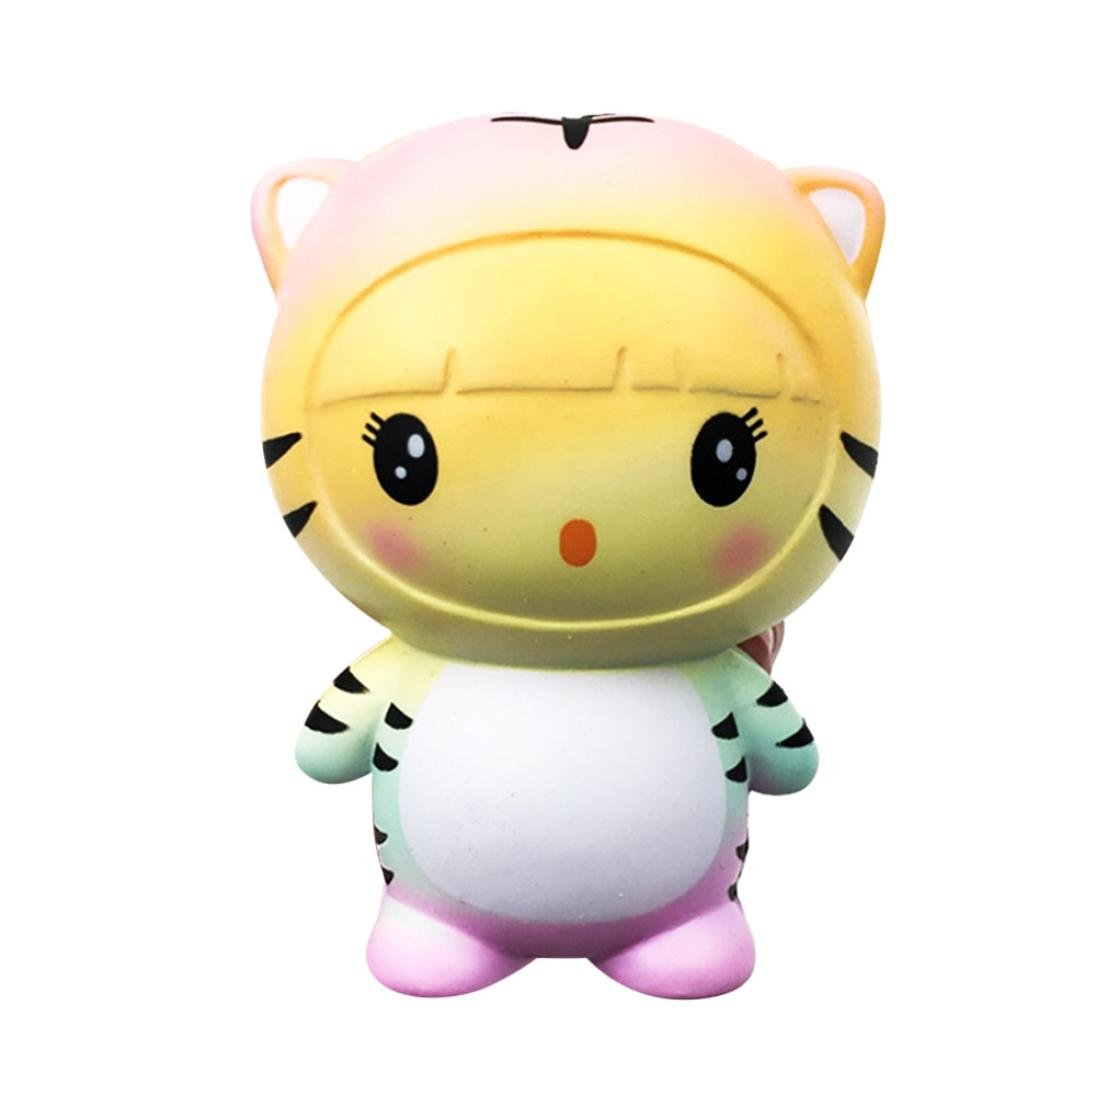 MOONHOUSE 2018 Exquisite Love Colourful Tiger Cartoon Cream Squeeze Scented Squishy Charm Slow Rising Simulation Kid Relief Toy Anxiet Gift (Rainbow)